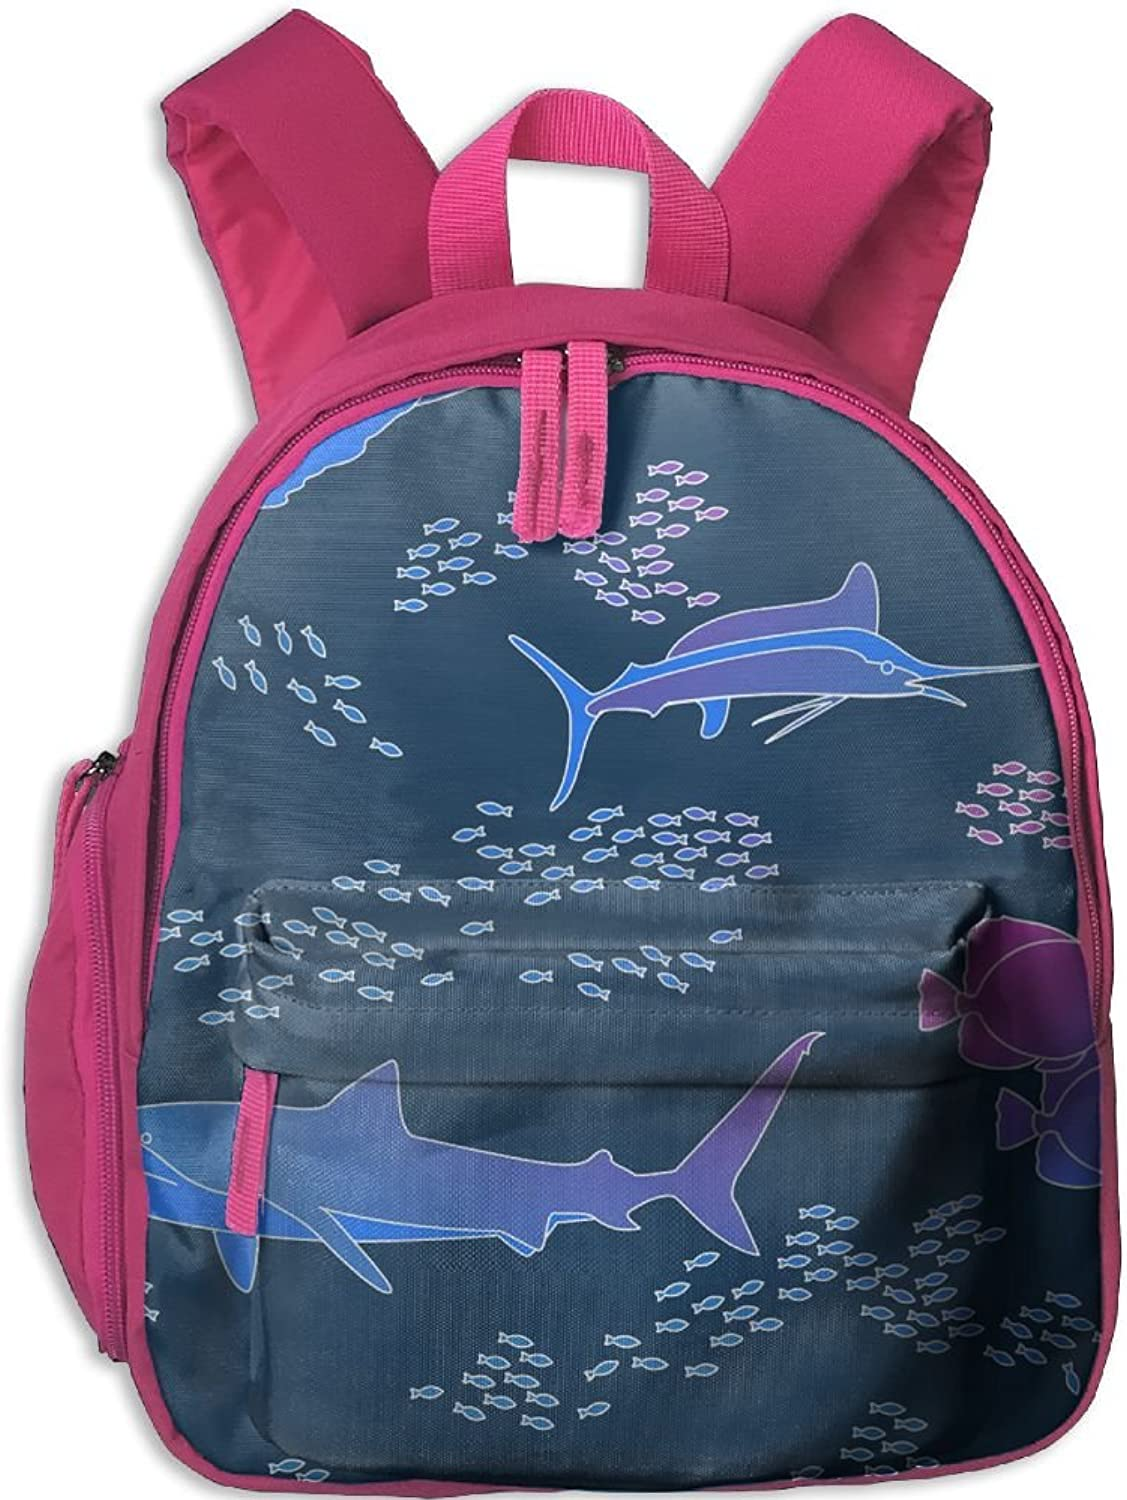 School Bag Vibrant Ocean(10482) With Durable Travel Camping Backpack For Boys And Girls